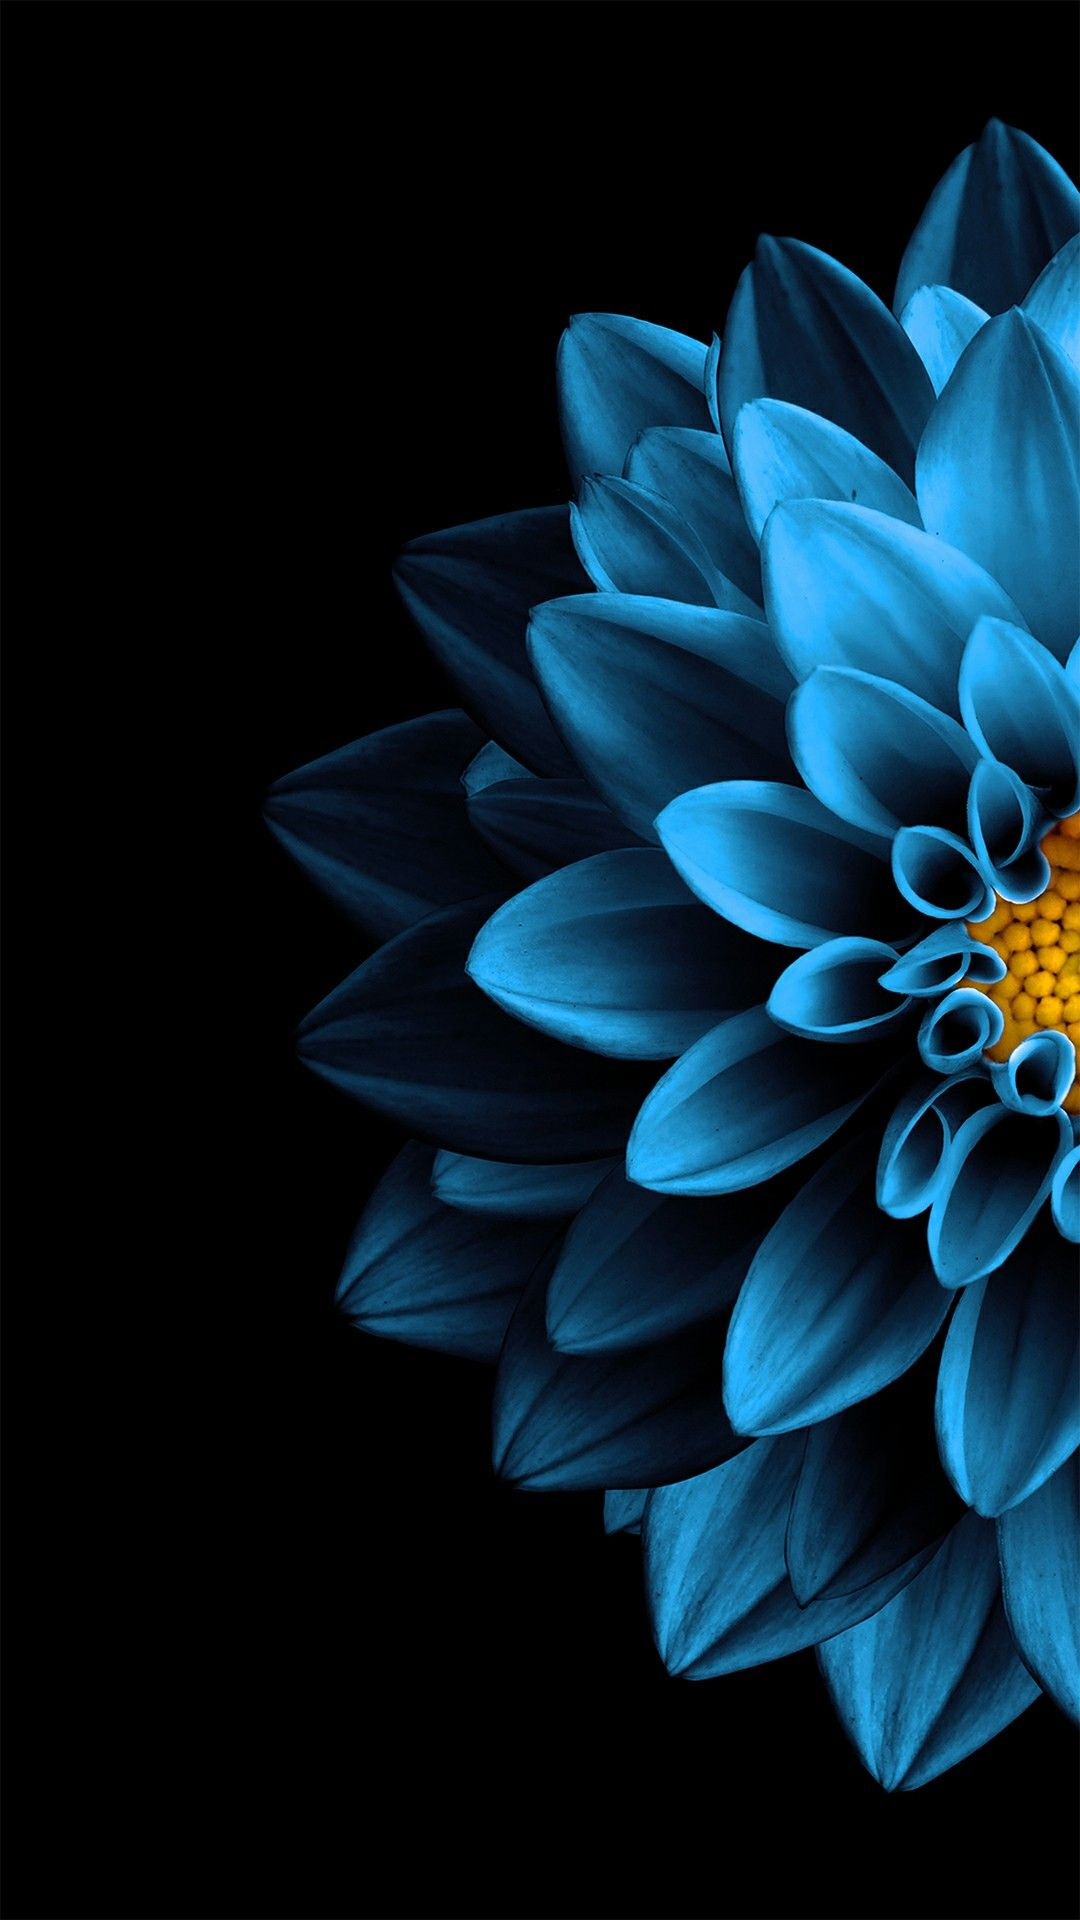 Bright Blue Dahlia + Black Background Wallpaper from Uploaded by user